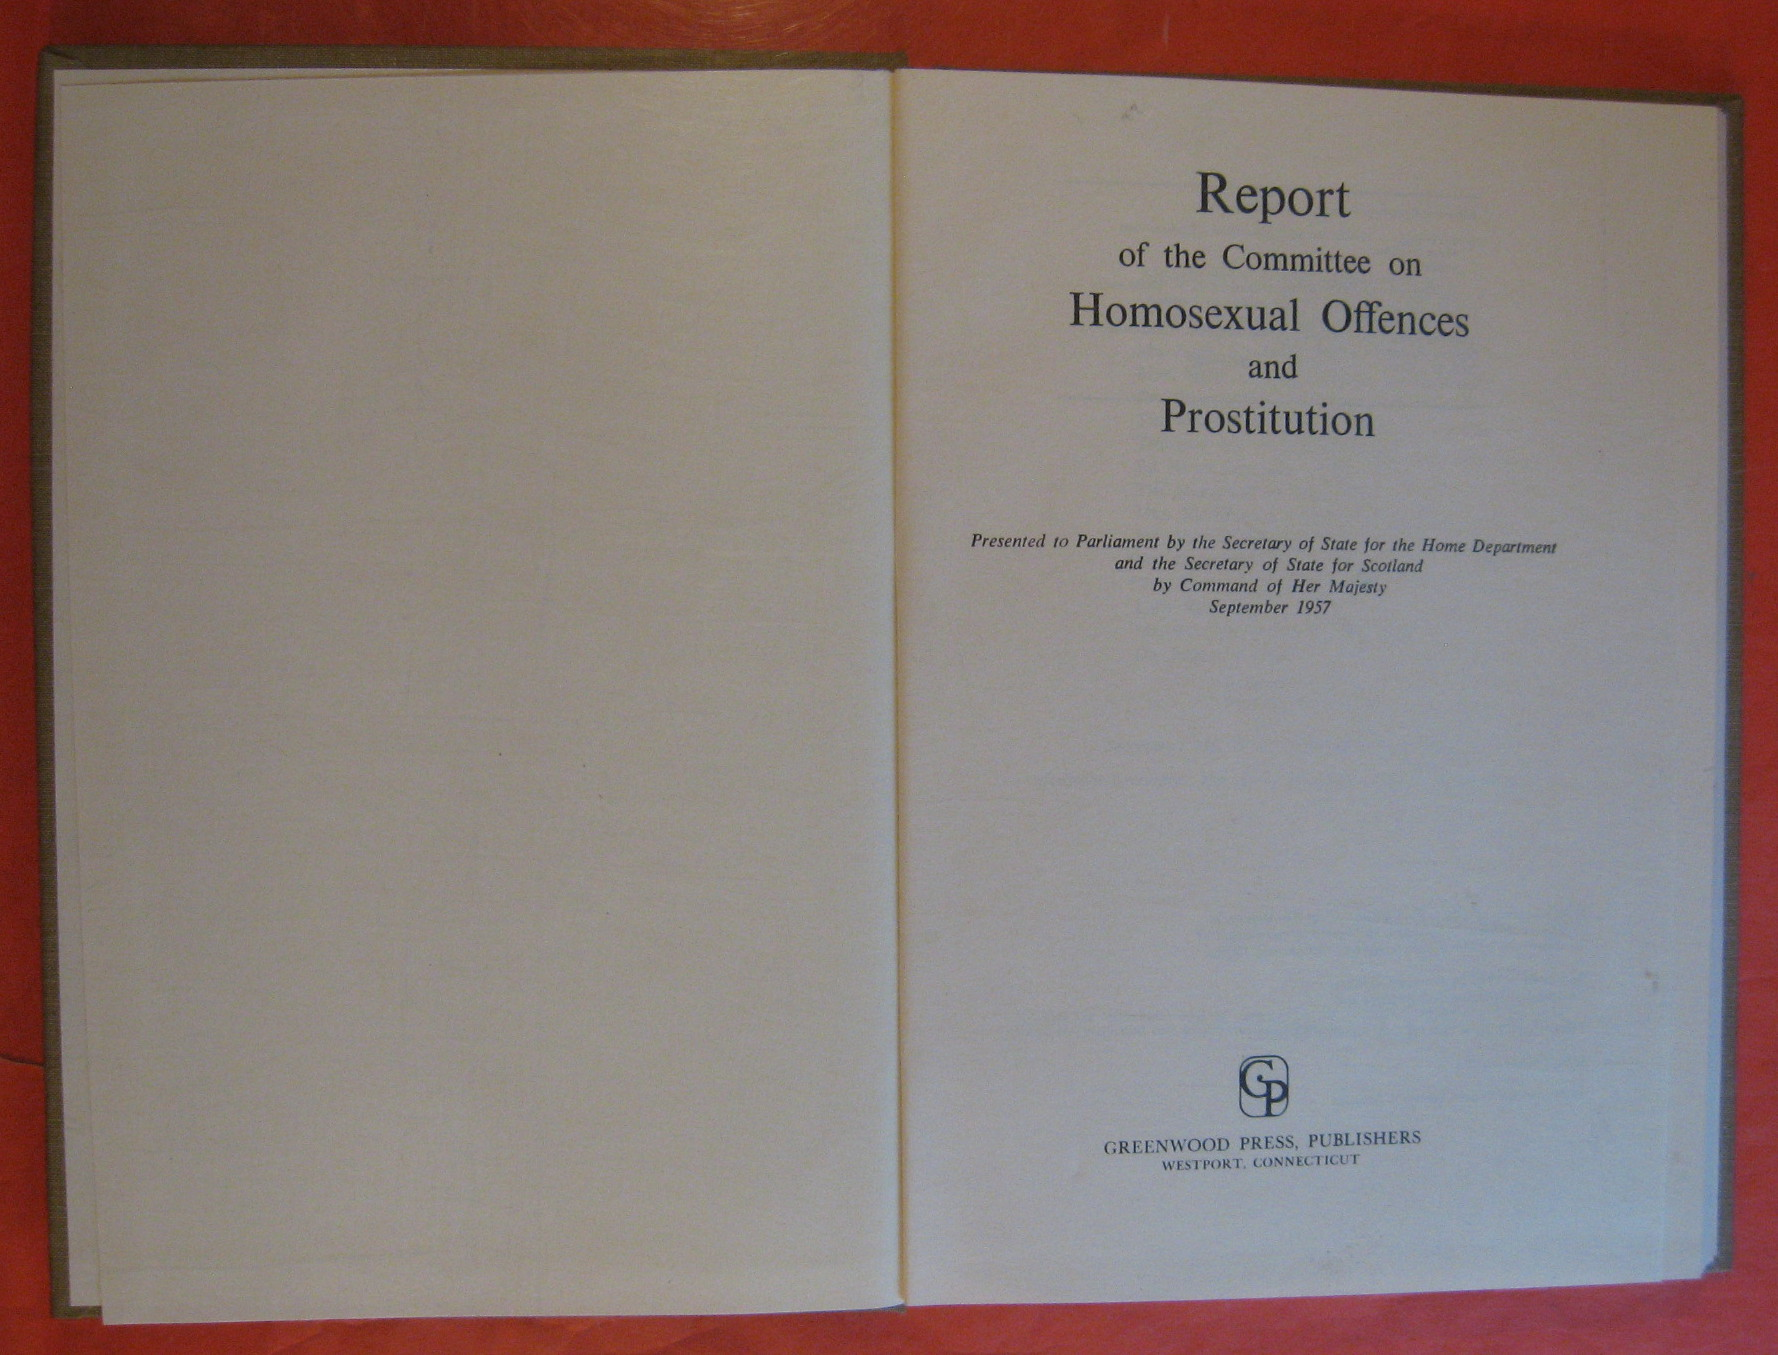 Report of the Committee on Homosexual Offences and Prostitution:  Presented to Parliament by the Secretary of State for the Home Department and the Secretary of State for Scotland by Command of Her Majesty, September 1957